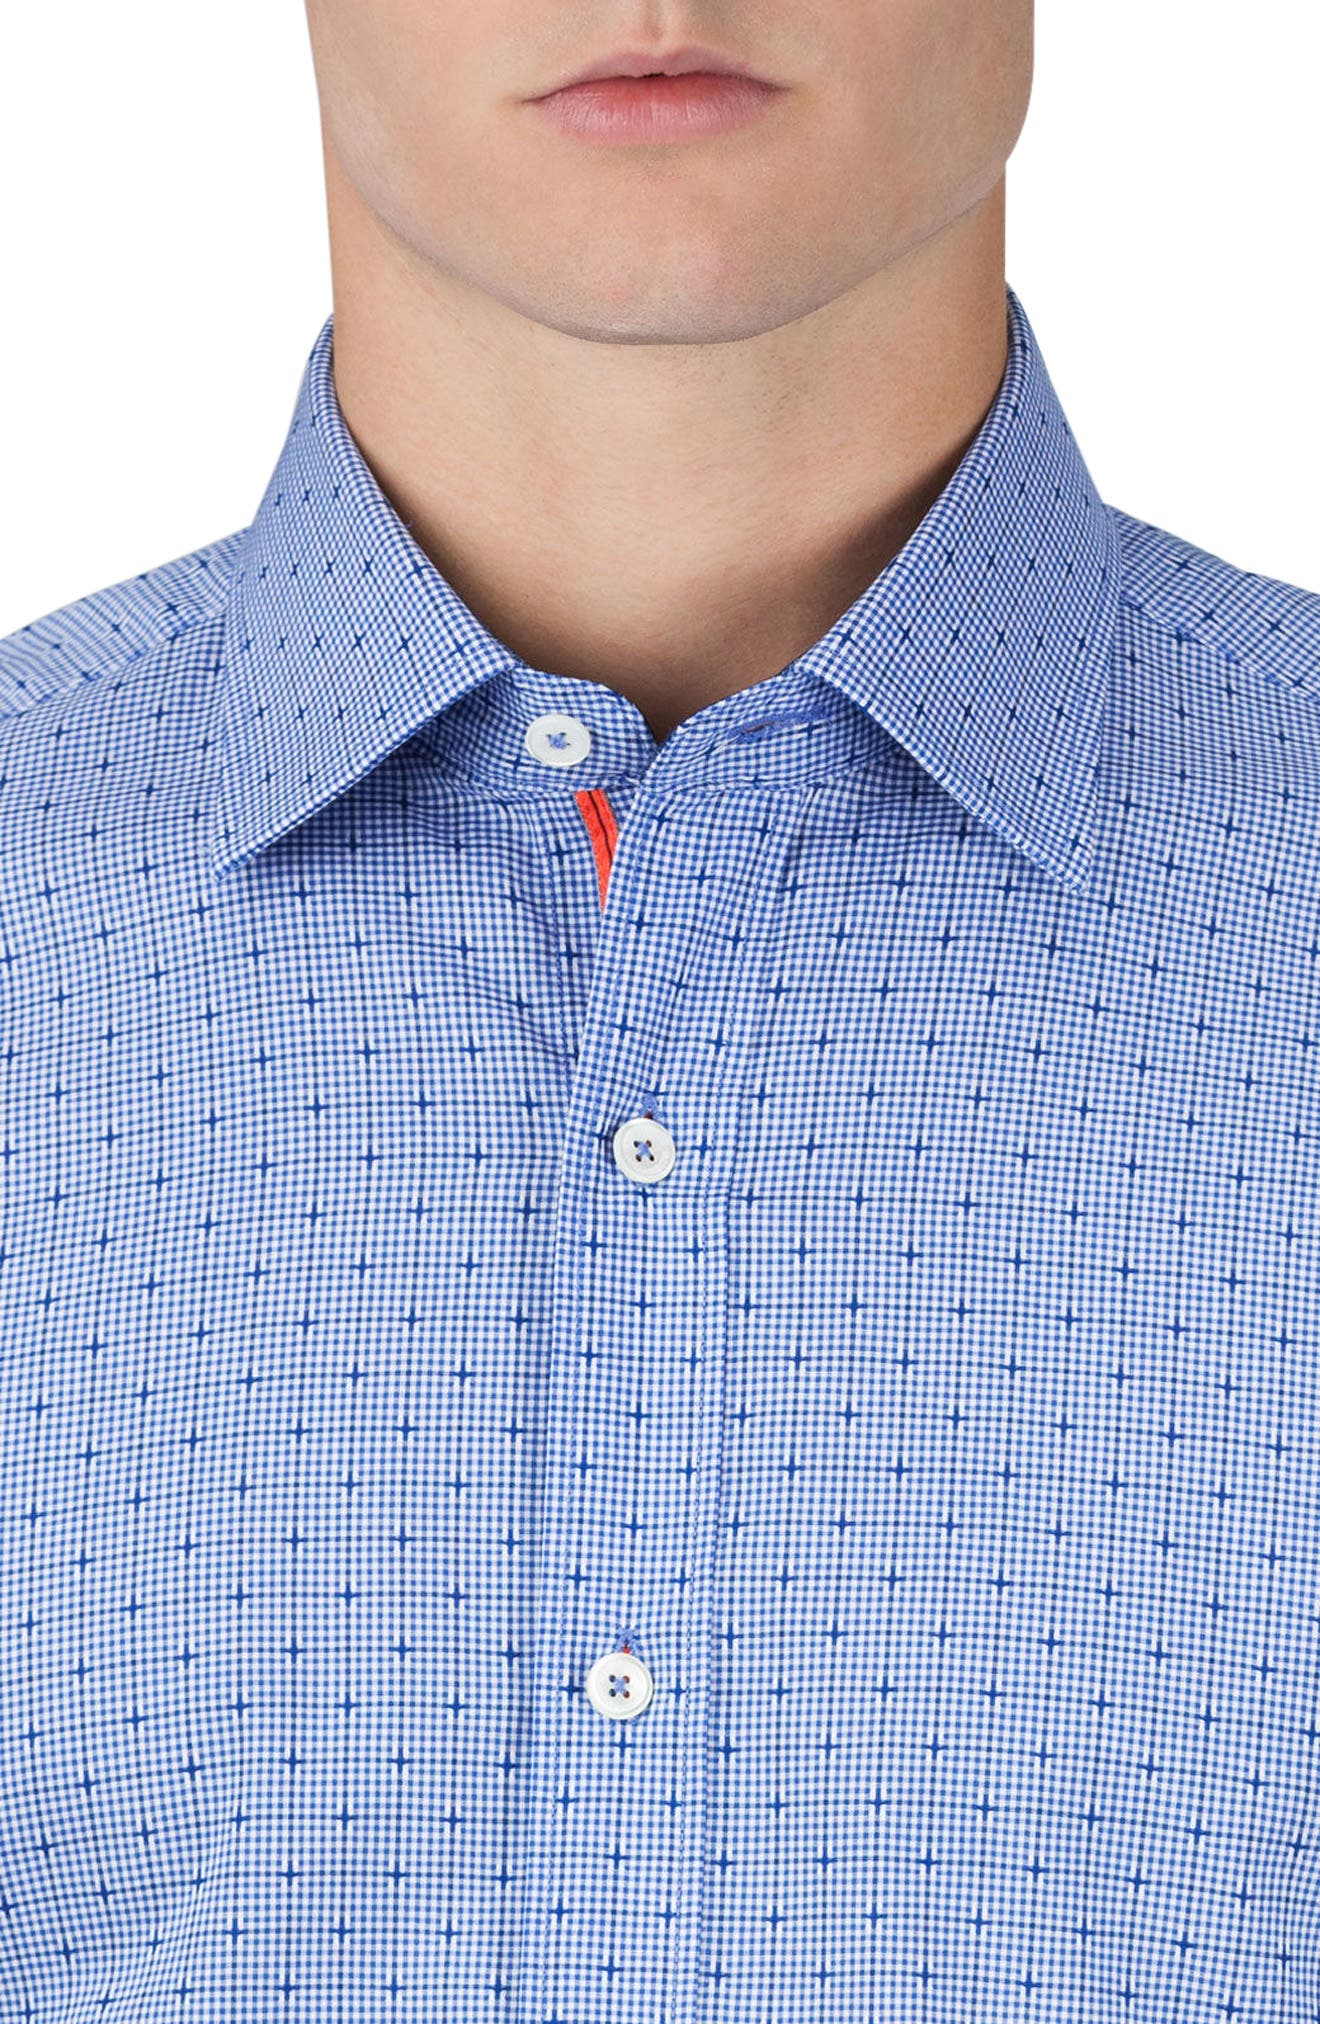 Alternate Image 3  - Bugatchi Classic Fit Layered Gingham Print Sport Shirt